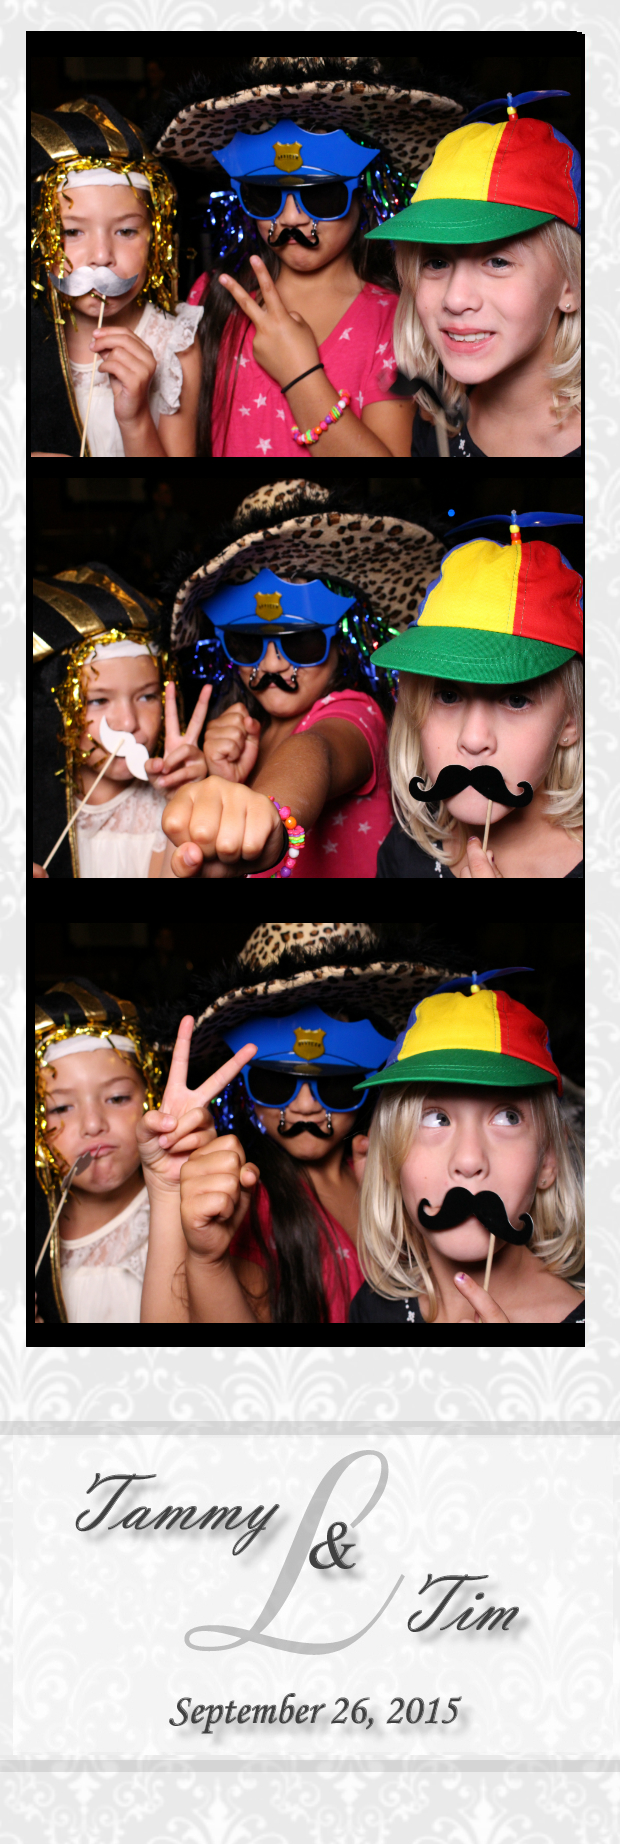 Guest House Events Photo Booth Strips T&T (22).jpg